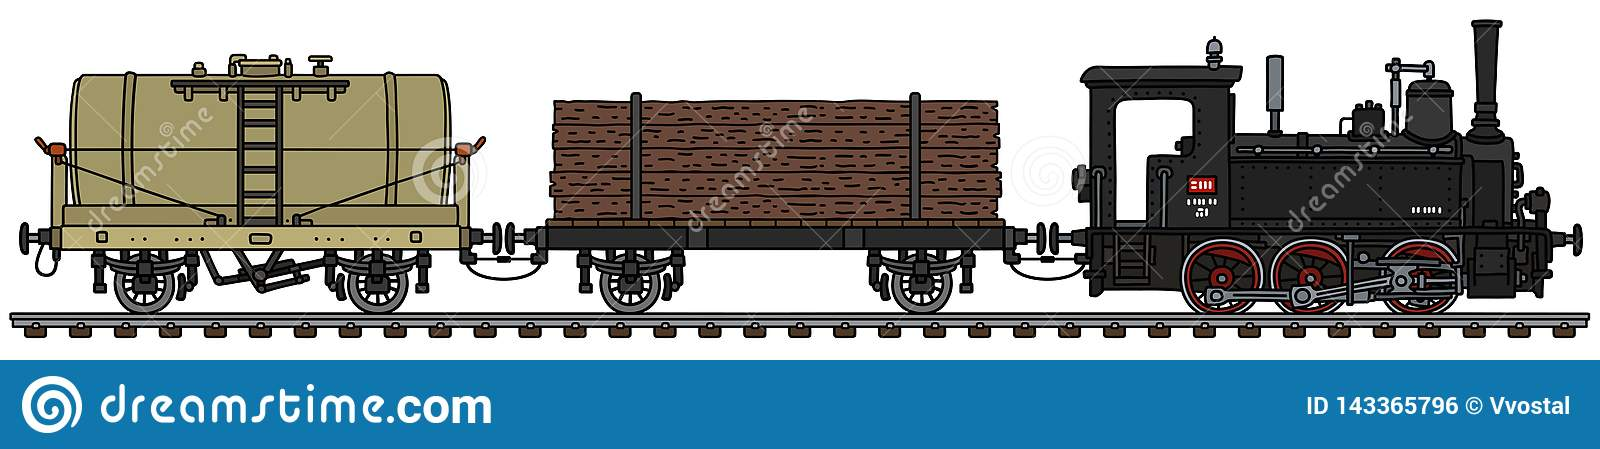 The Retro Freight Steam Train Stock Vector - Illustration of fuel